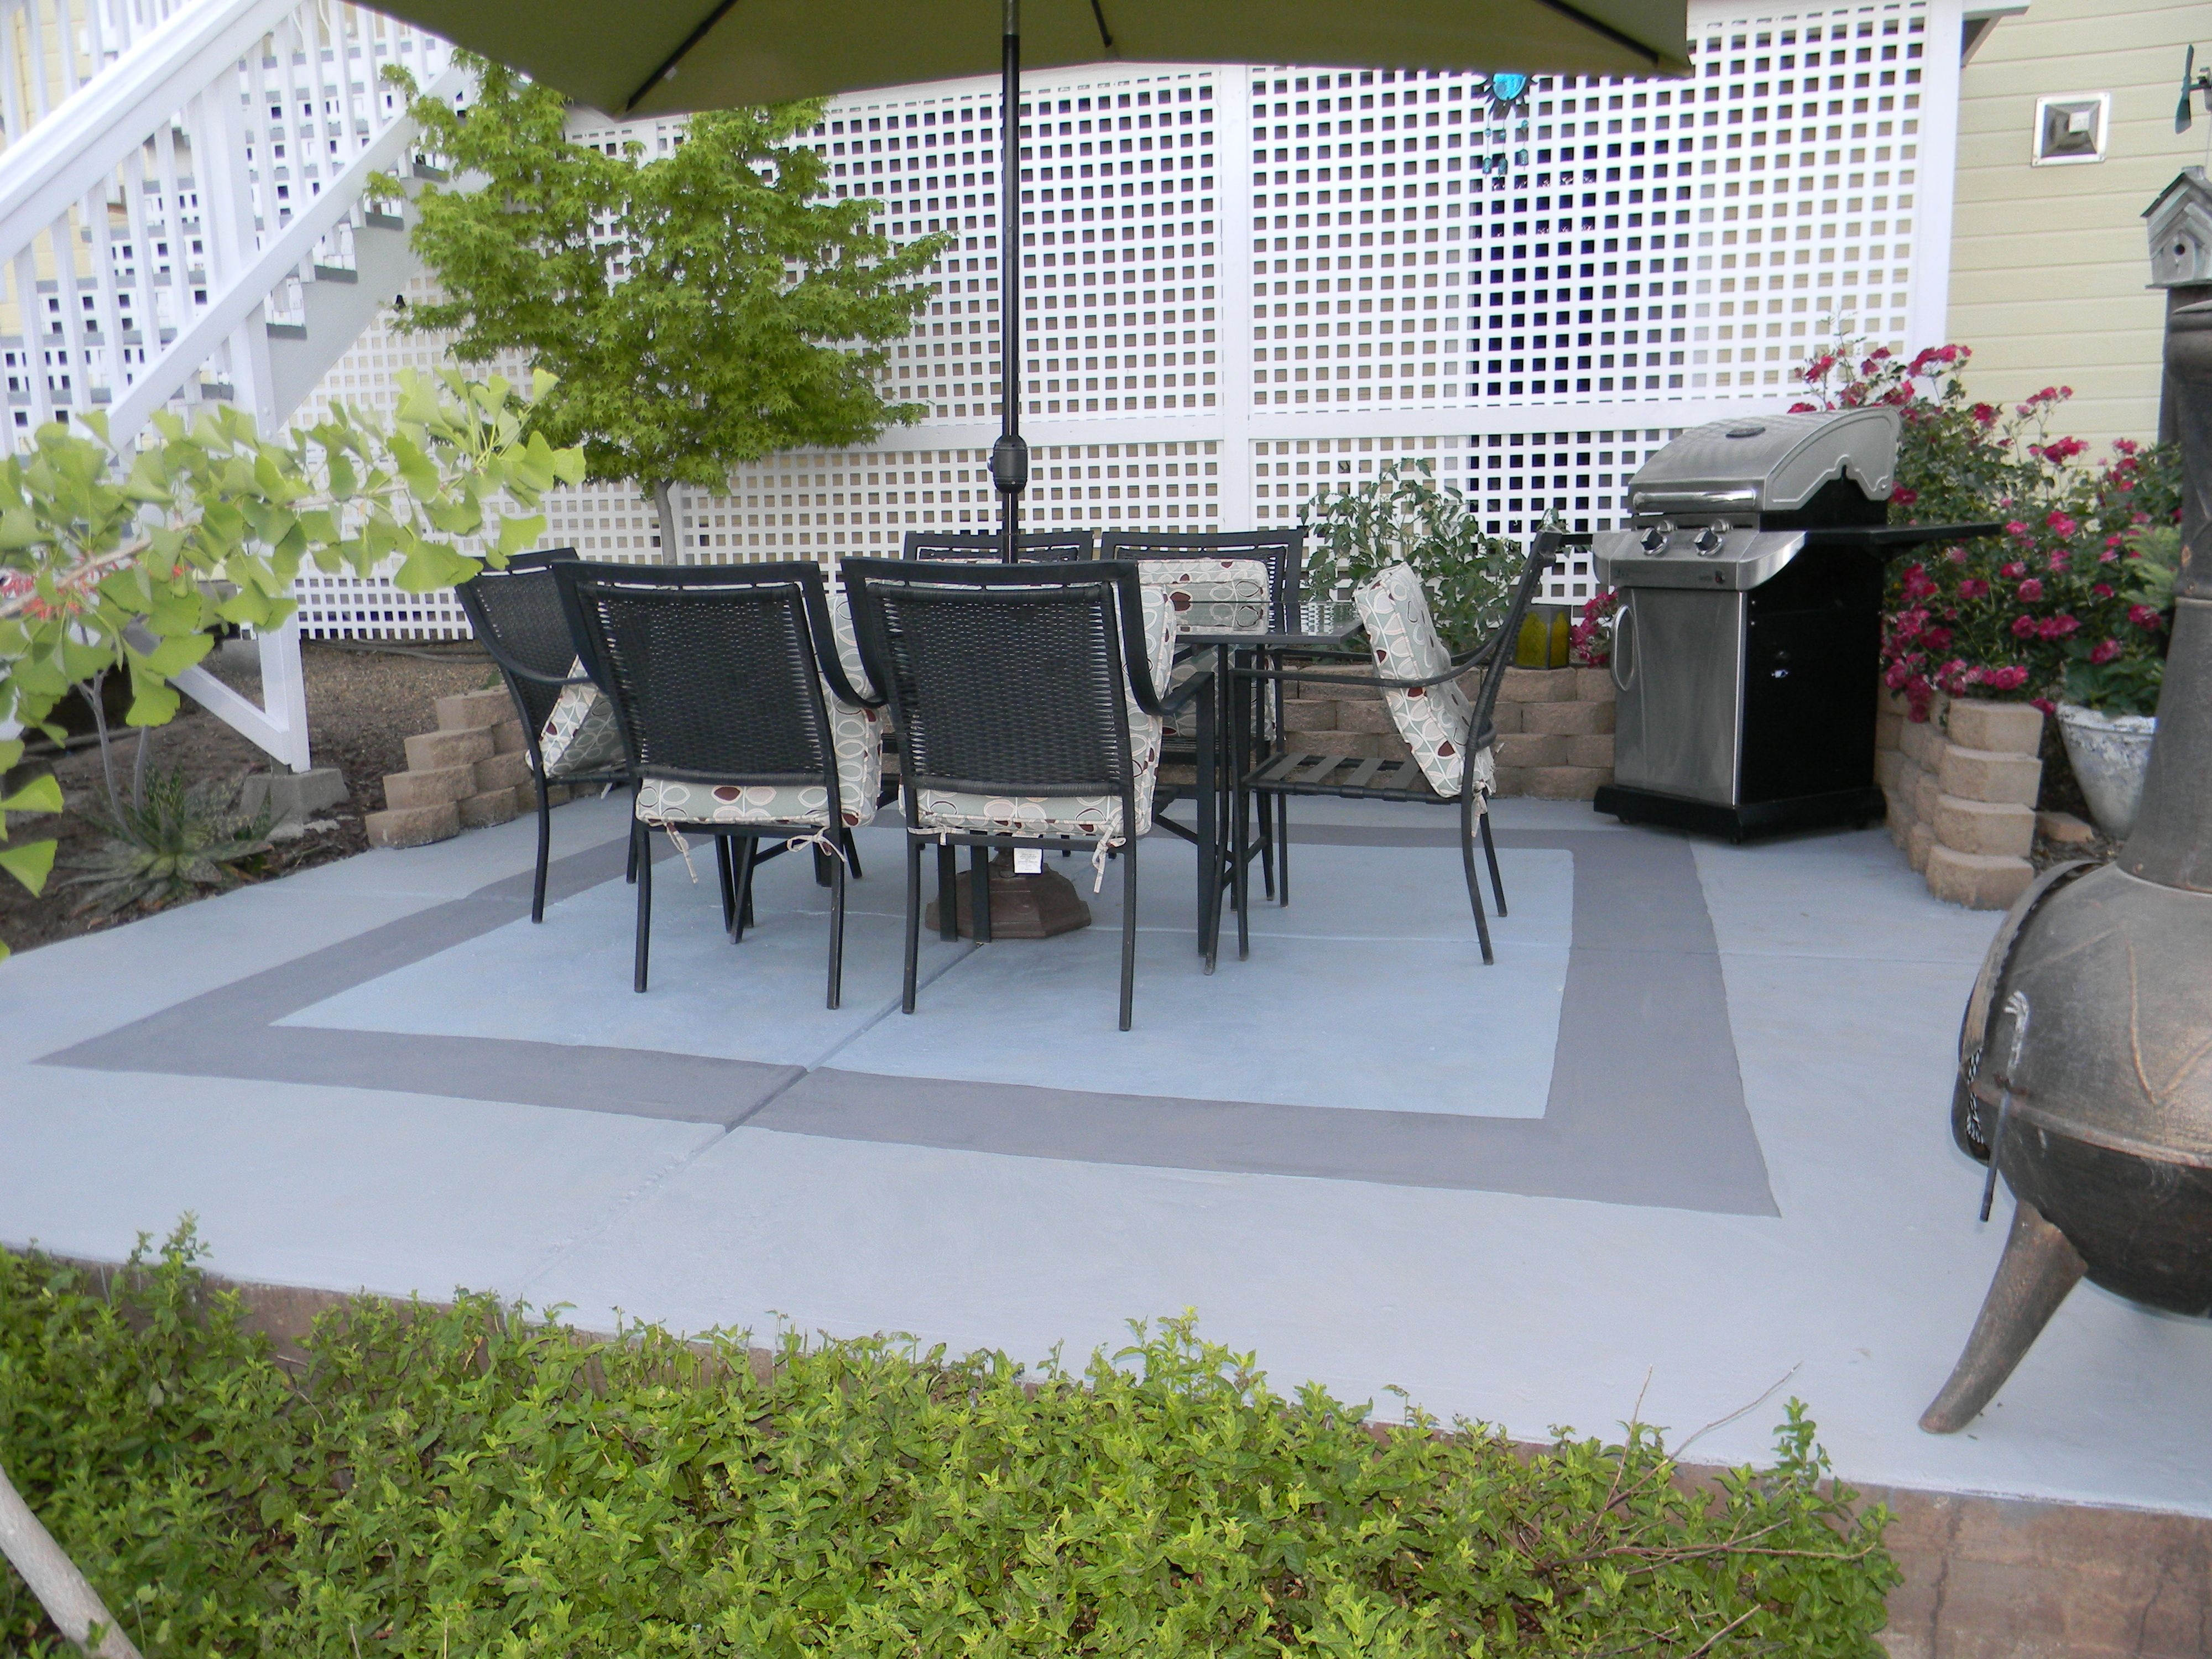 Pin by Elizabeth Brown on Pool and Patio Ideas   Paint ...